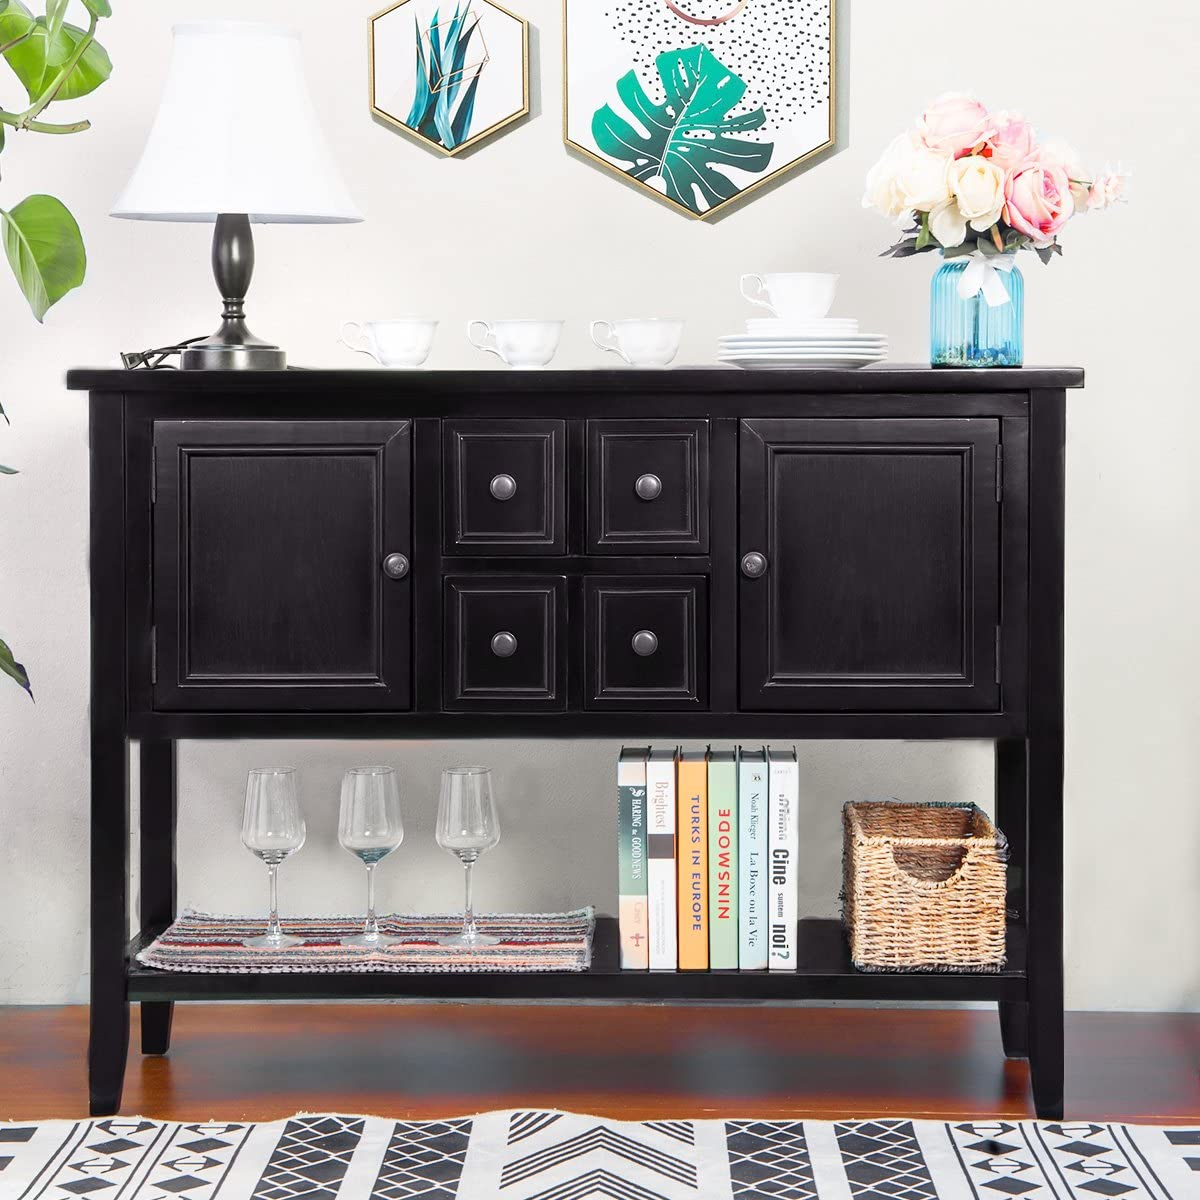 OUYS Buffet Table,Cambridge Series Sideboard Table with Four Storage Drawers, Two Cabinets and Bottom Shelf,Entry Table Sofa Table Buffet TV Stand Espresso